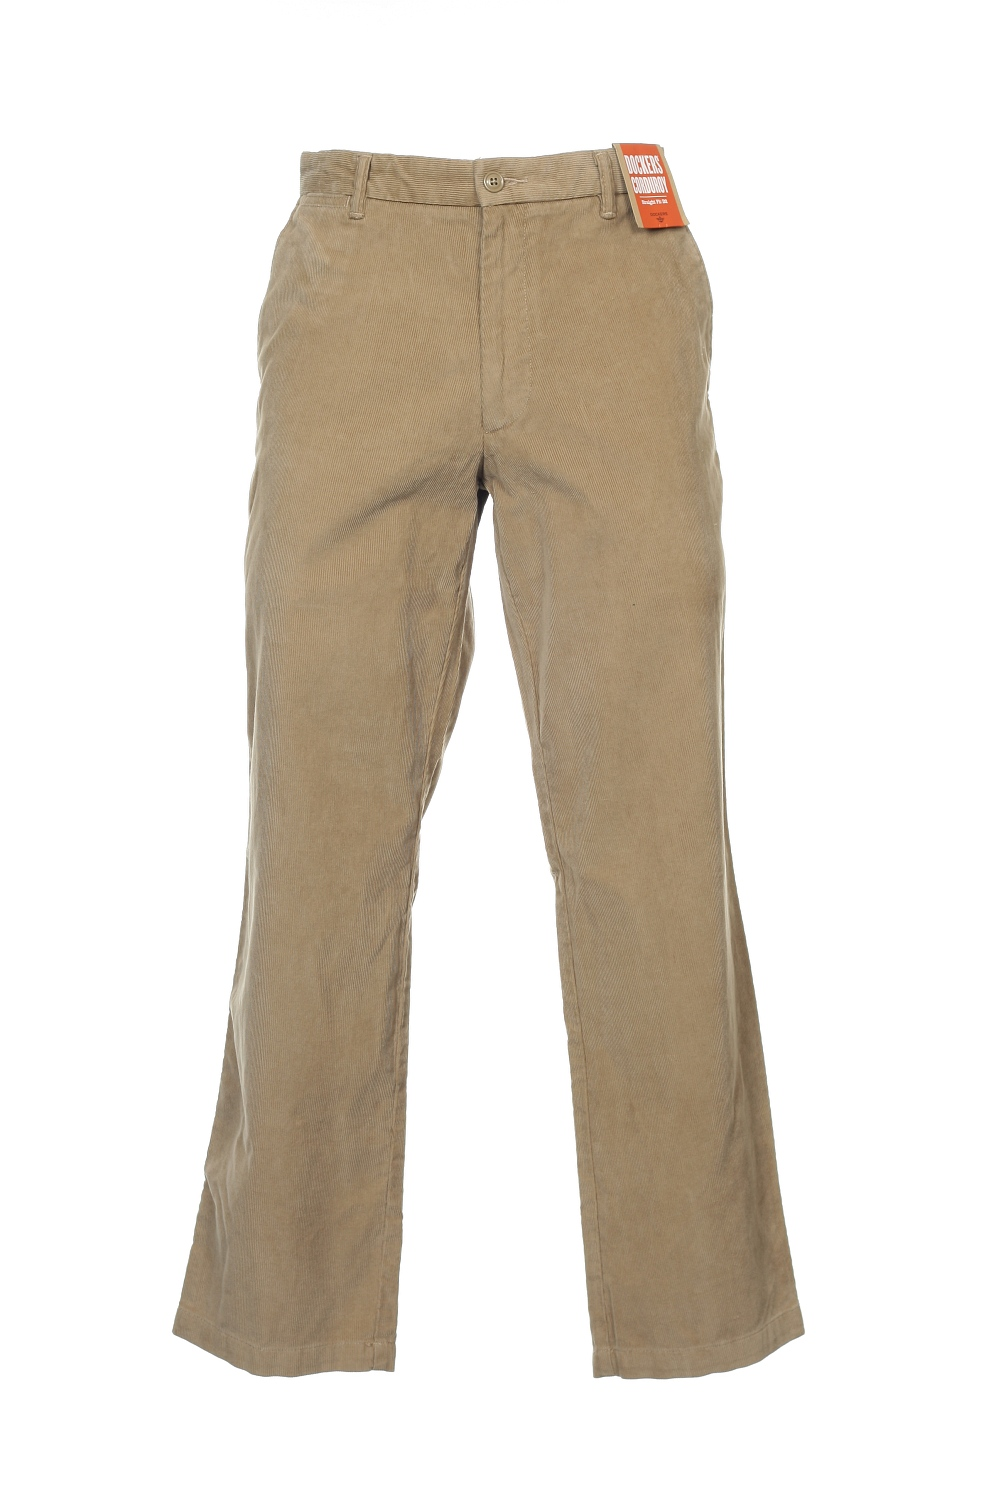 Dockers Corduroy by Dockers Men's Khaki Corduroy Pants by Dockers